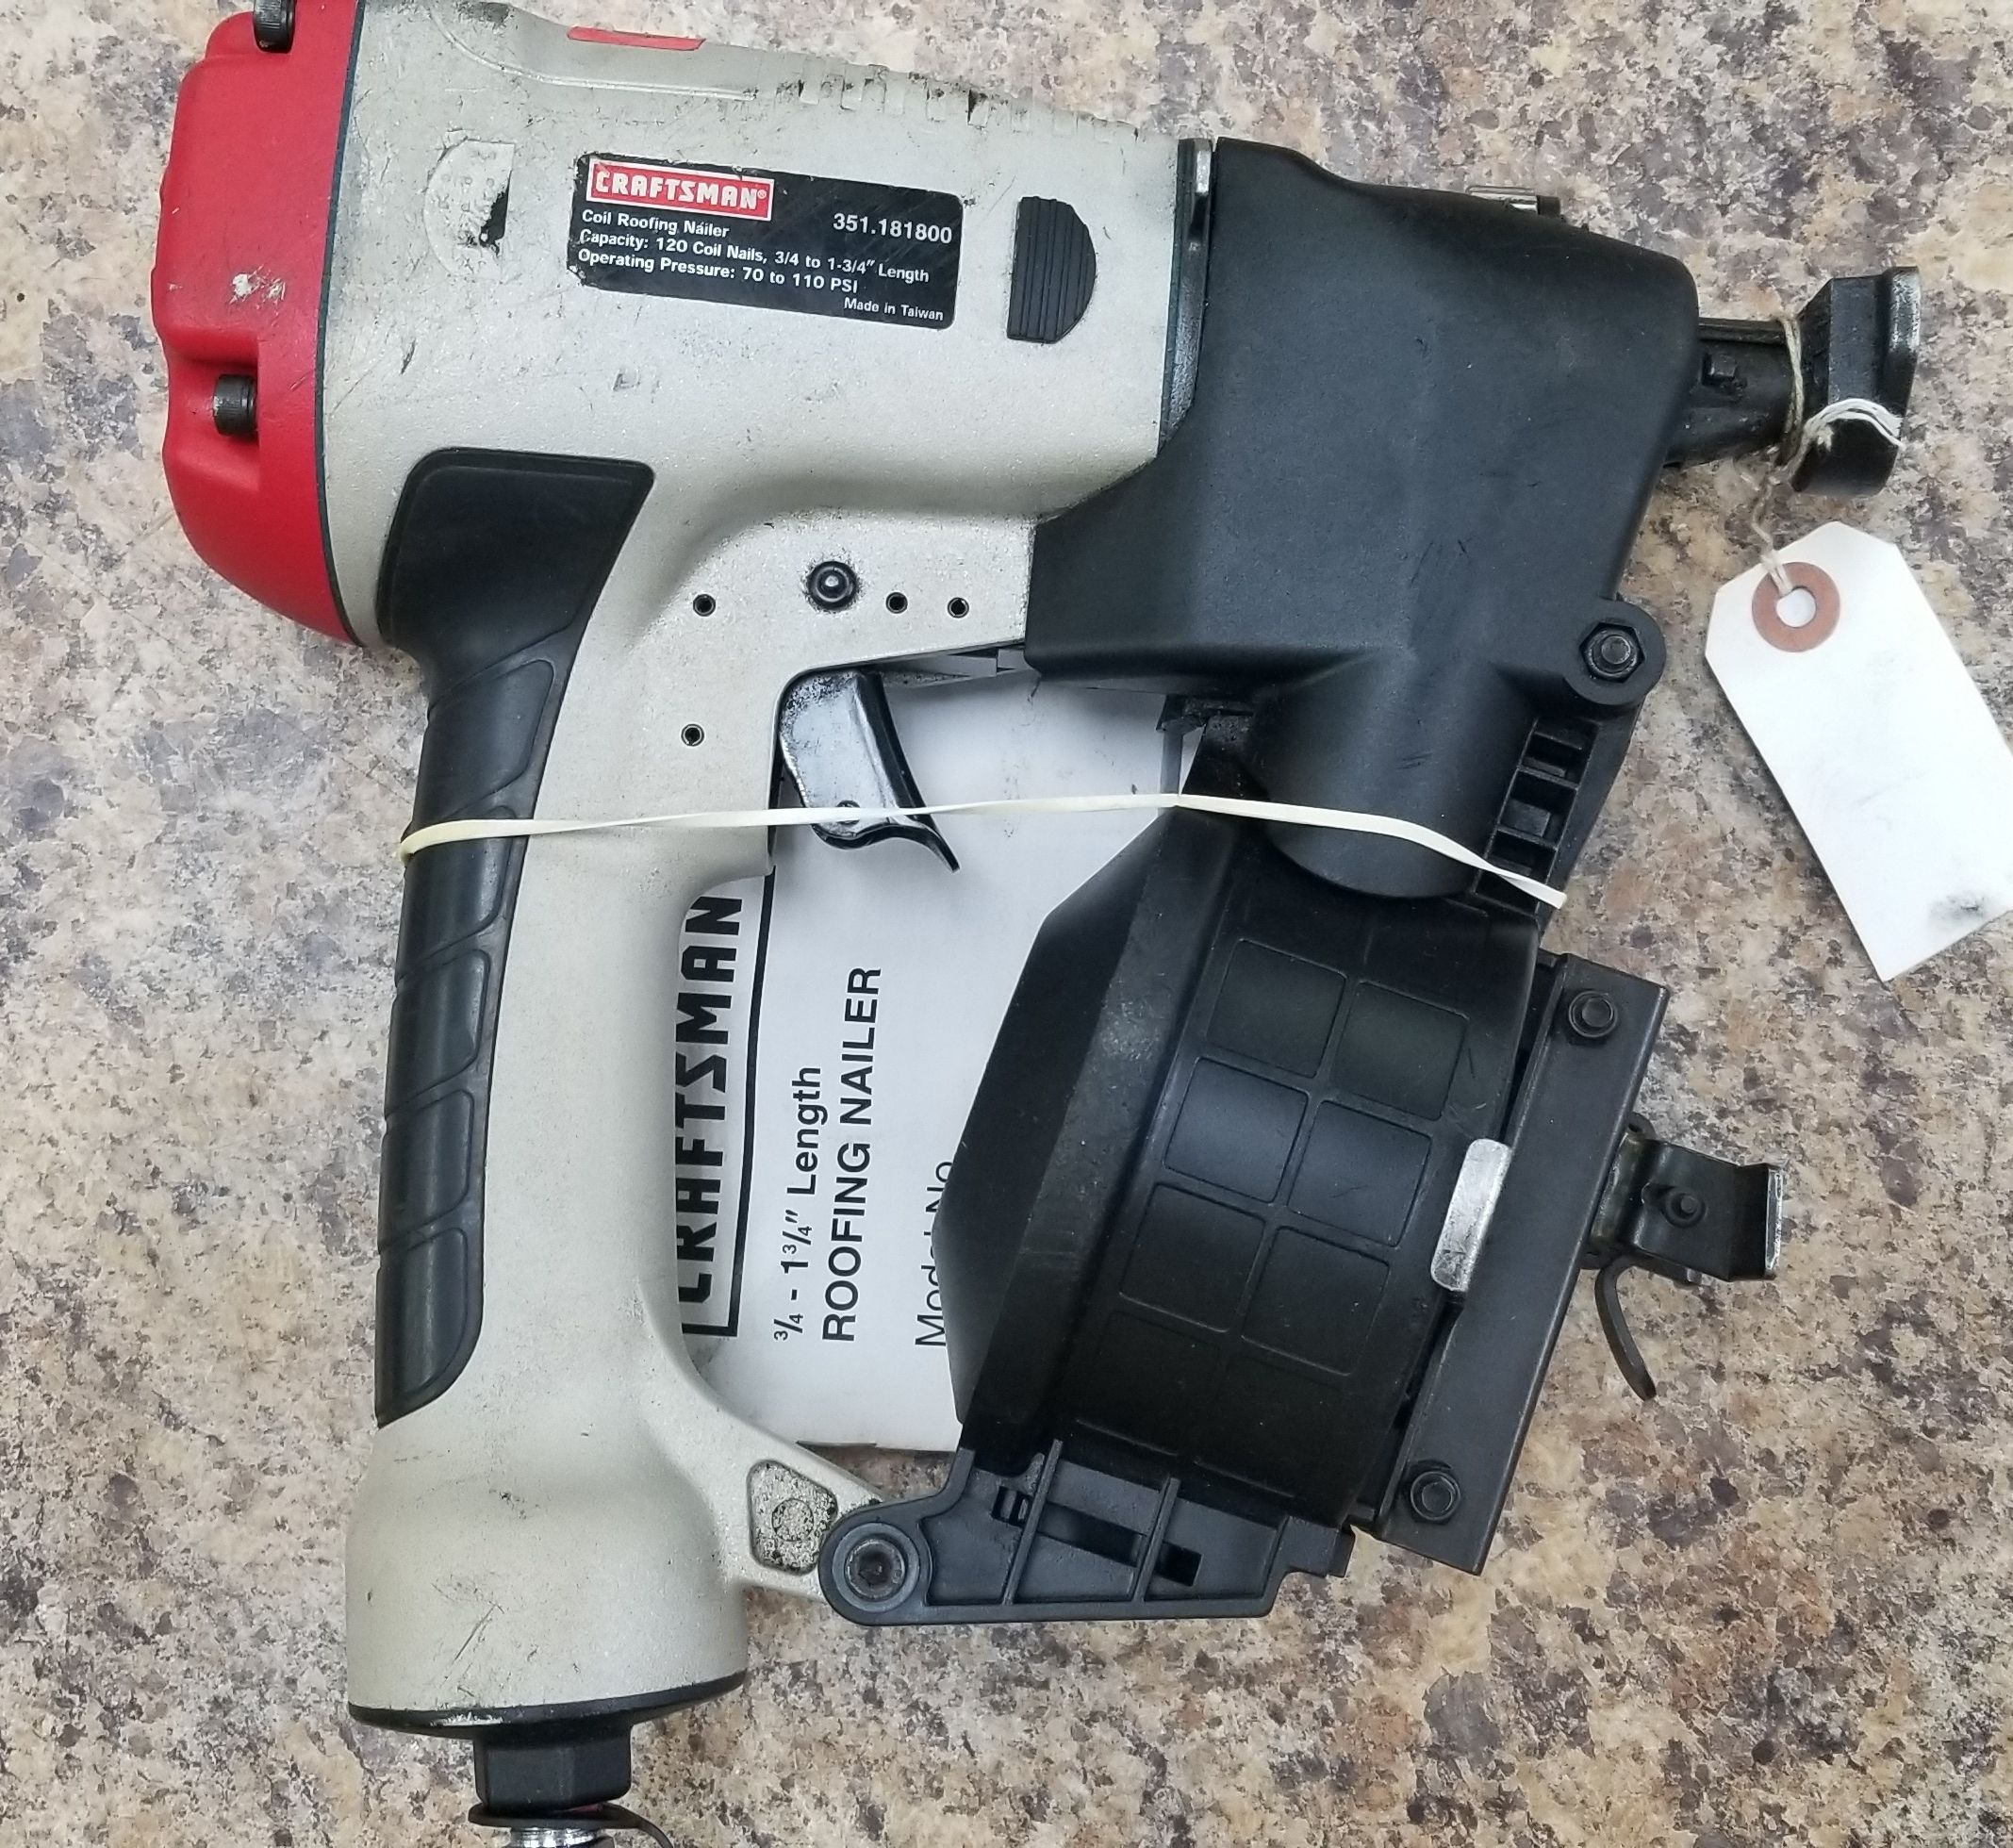 CRAFTSMAN - 351.181800 - NAILGUN TOOLS